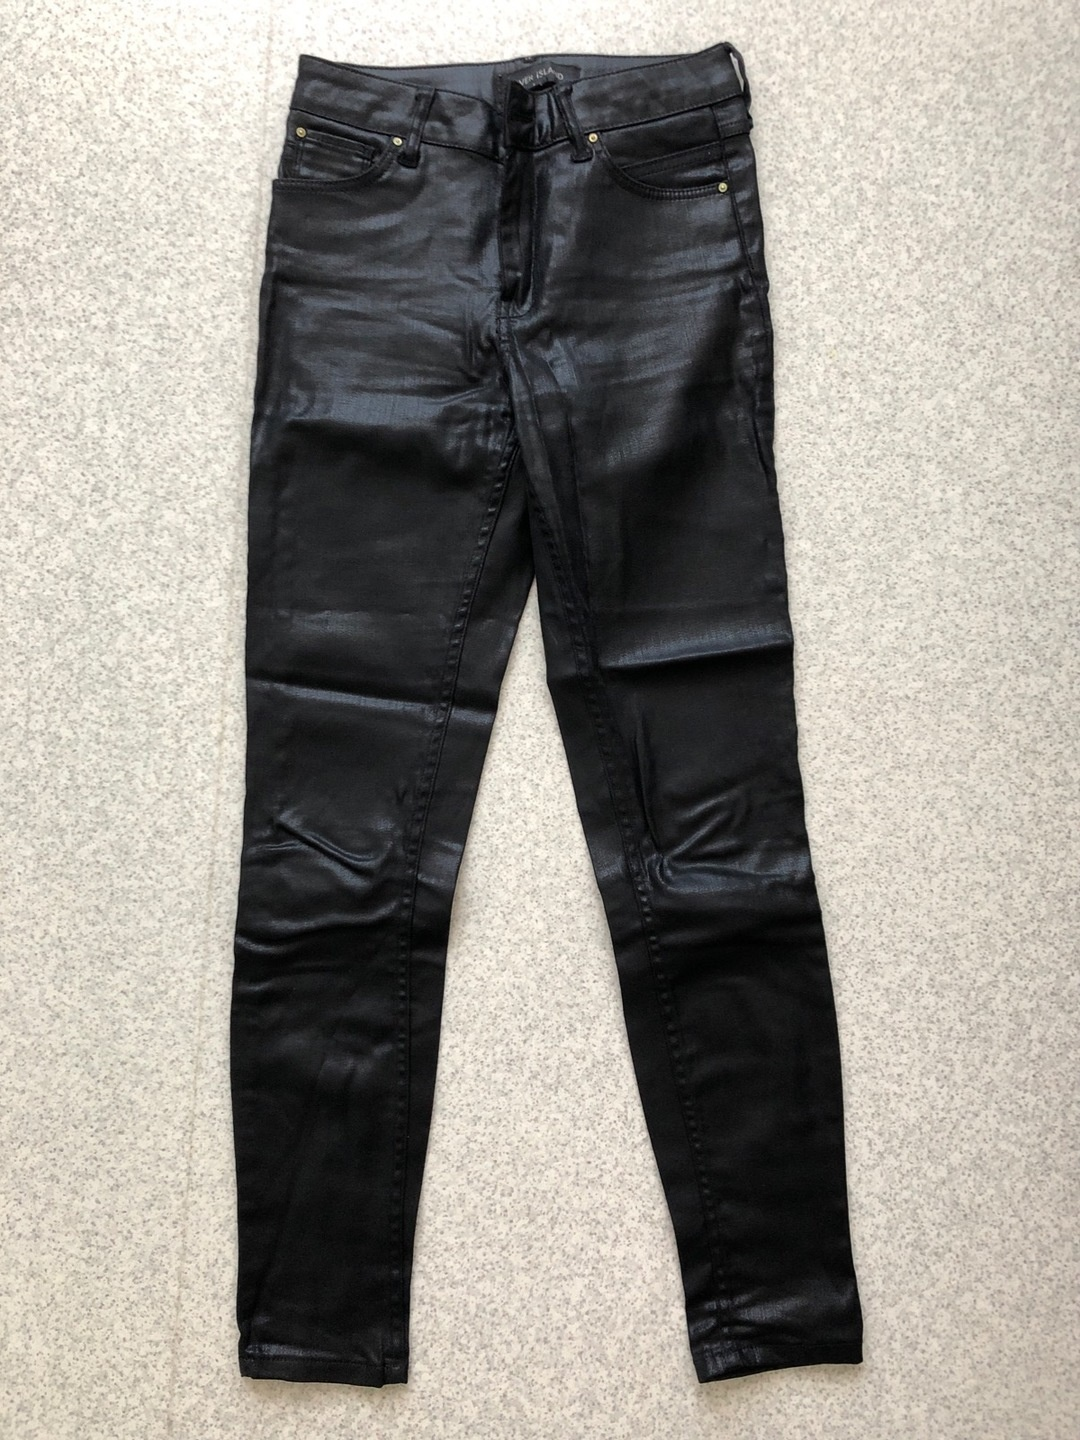 Women's trousers & jeans - RIVER ISLAND photo 3